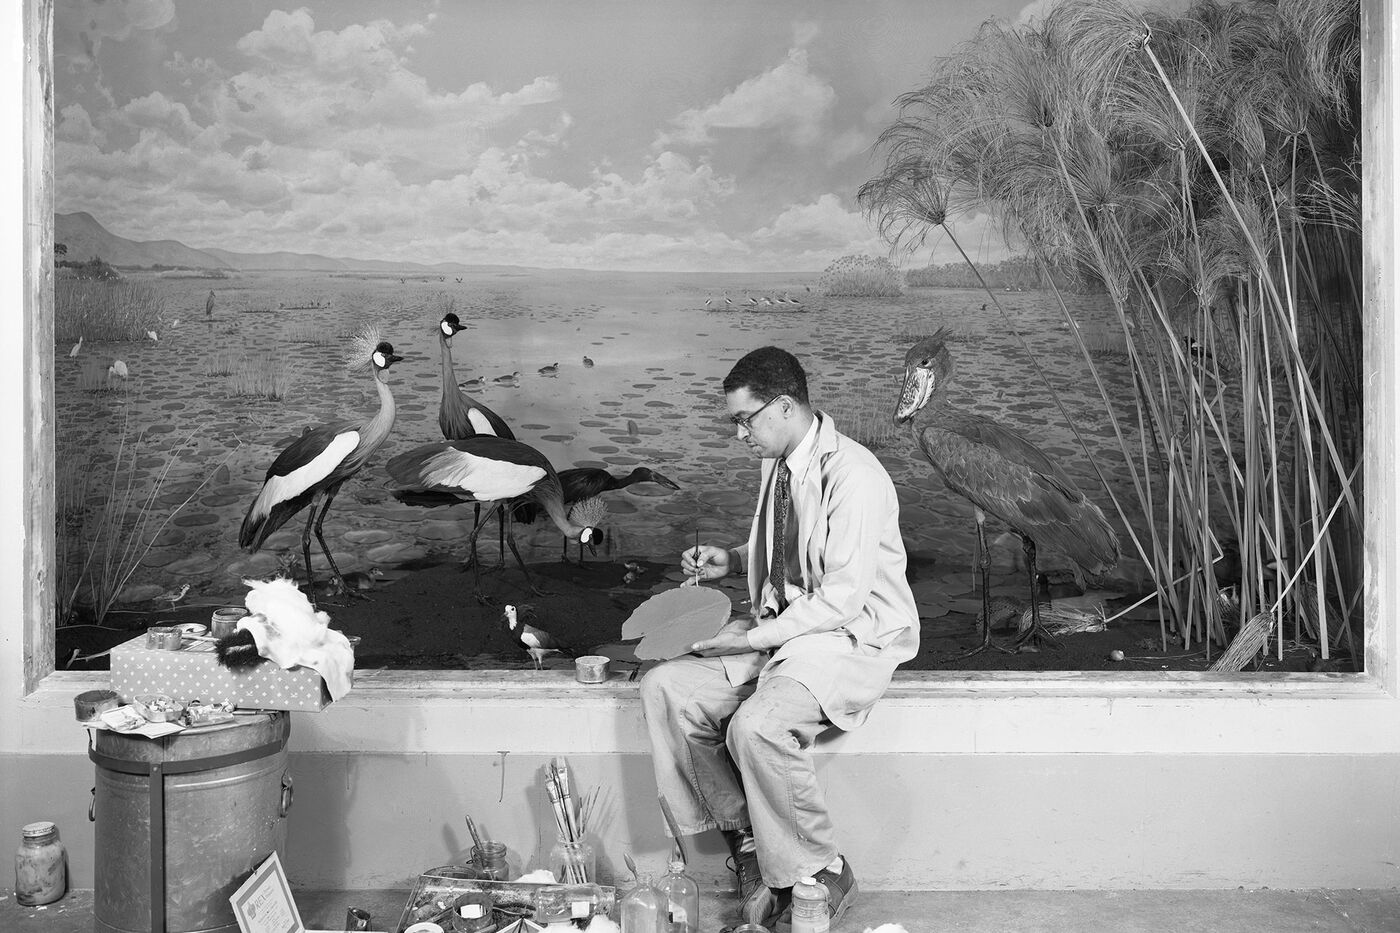 Carl Cotton, wearing a lab coat, sits in front of a diorama with birds. He holds an artist's palette, and a variety of paint, brushes, and other supplies are spread out on the floor in front of him.